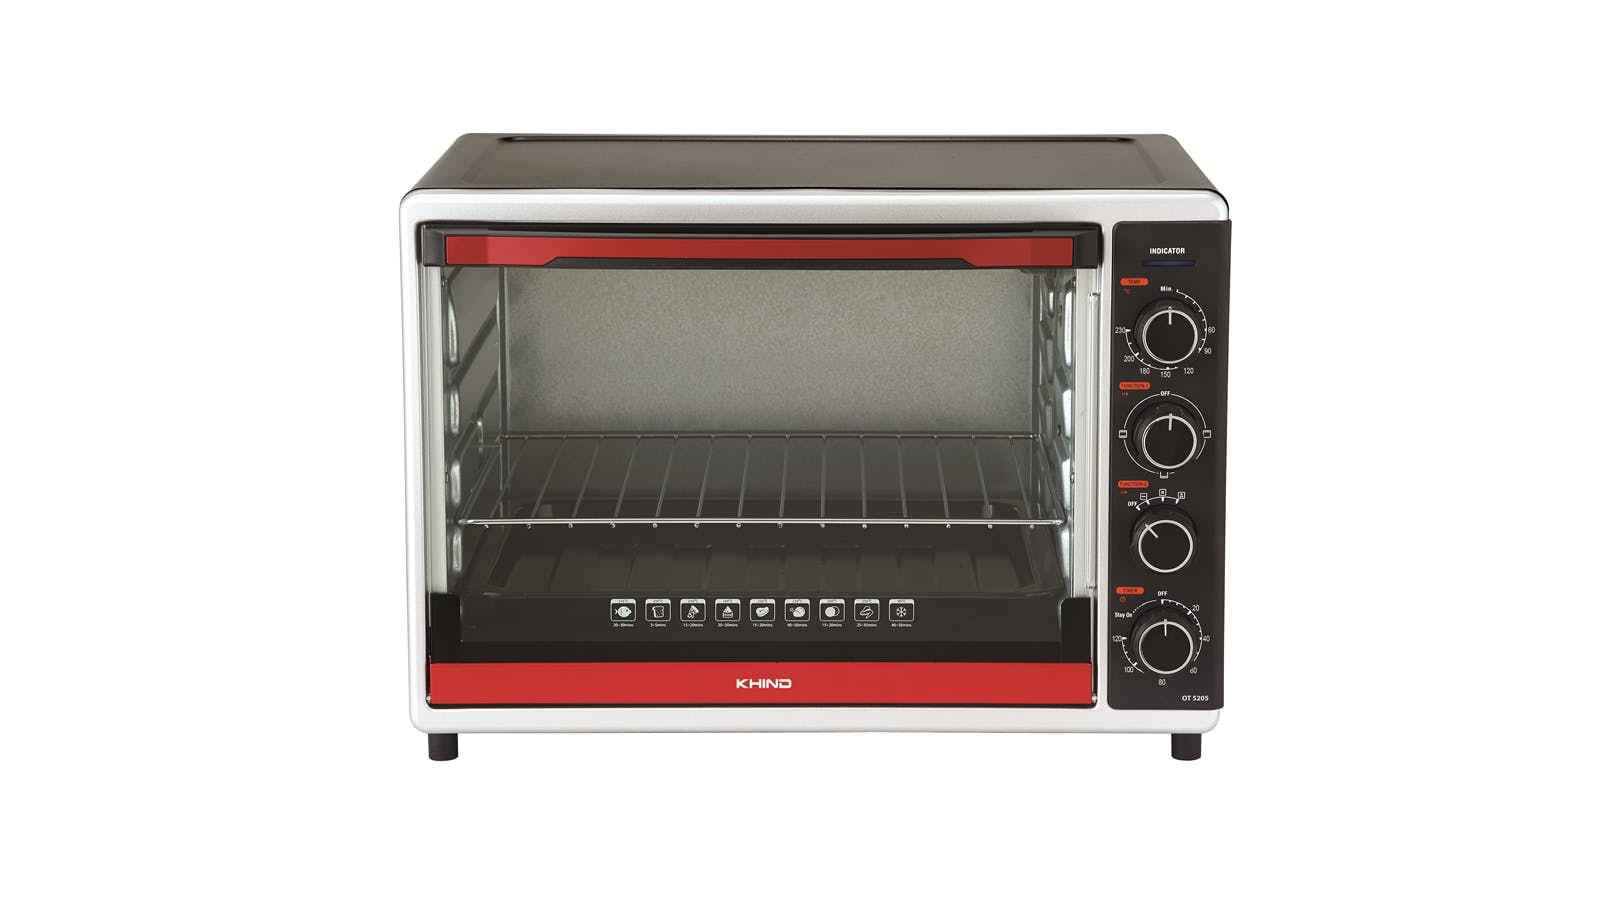 Khind Ot 5205 52l Electric Oven Harvey Norman Malaysia